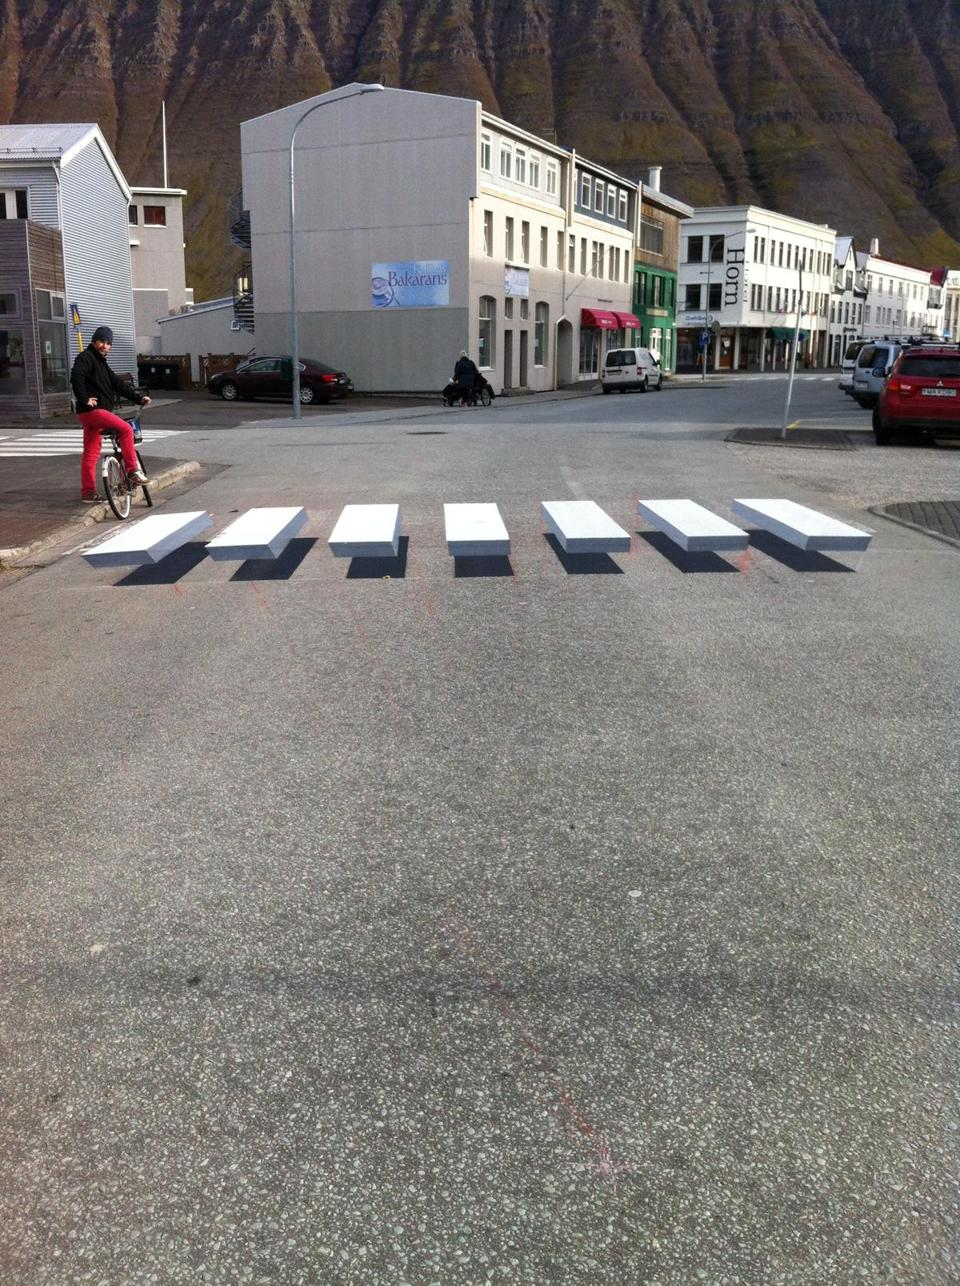 04illusion - The scenic town of êsafjšr?ur, Iceland recently installed a 3-D crosswalk on a centrally-located street. (Ralf Trylla / Town of êsafjšr?ur, Iceland)